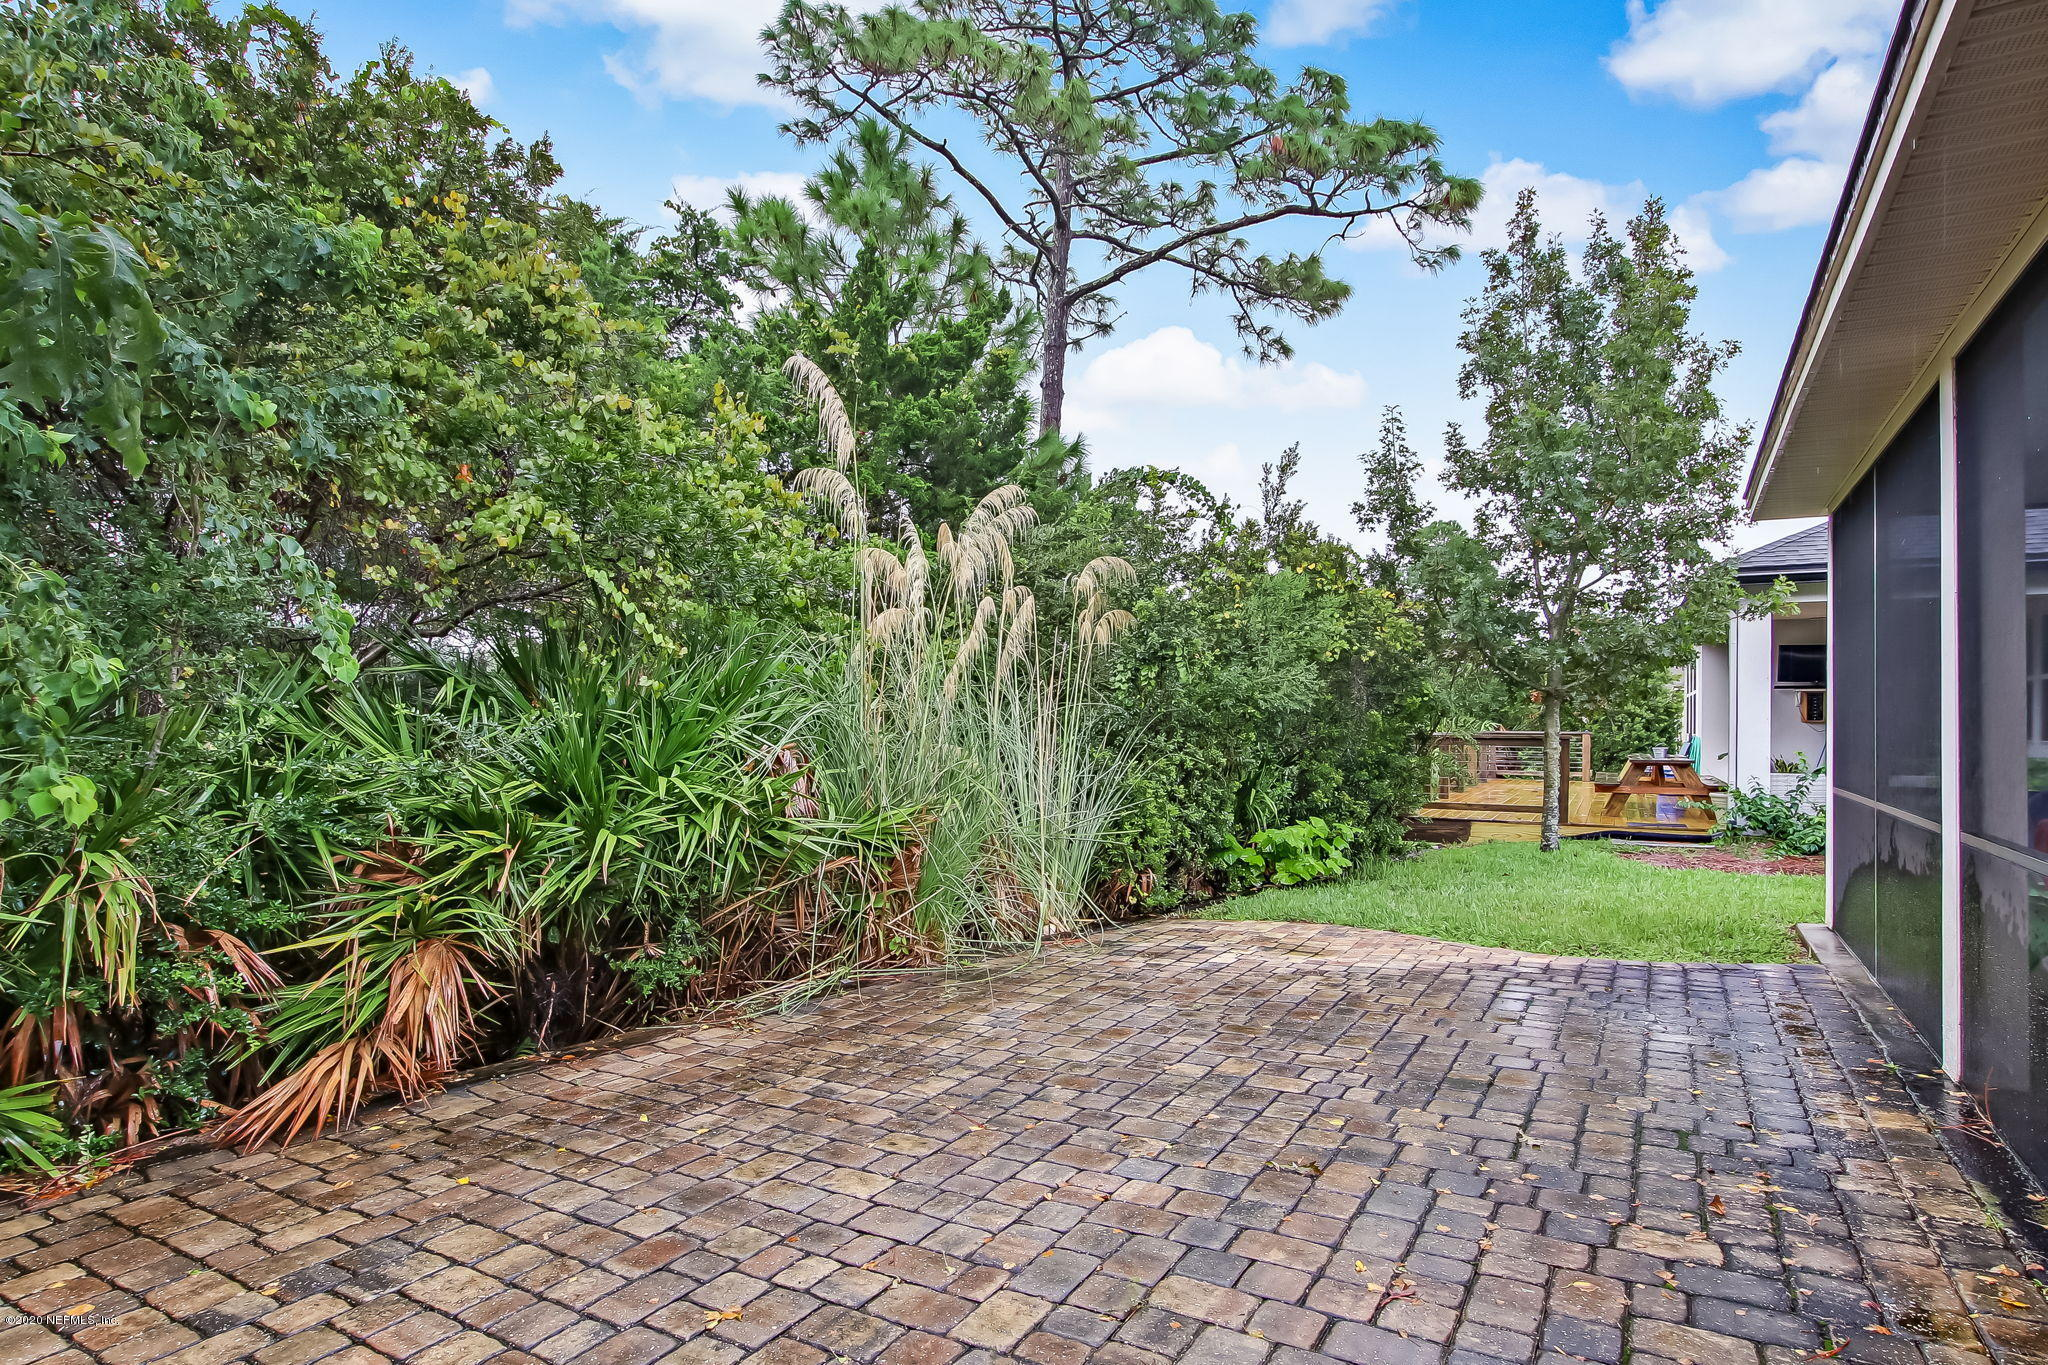 120 FRONTERA, ST AUGUSTINE, FLORIDA 32084, 4 Bedrooms Bedrooms, ,2 BathroomsBathrooms,Residential,For sale,FRONTERA,1075791